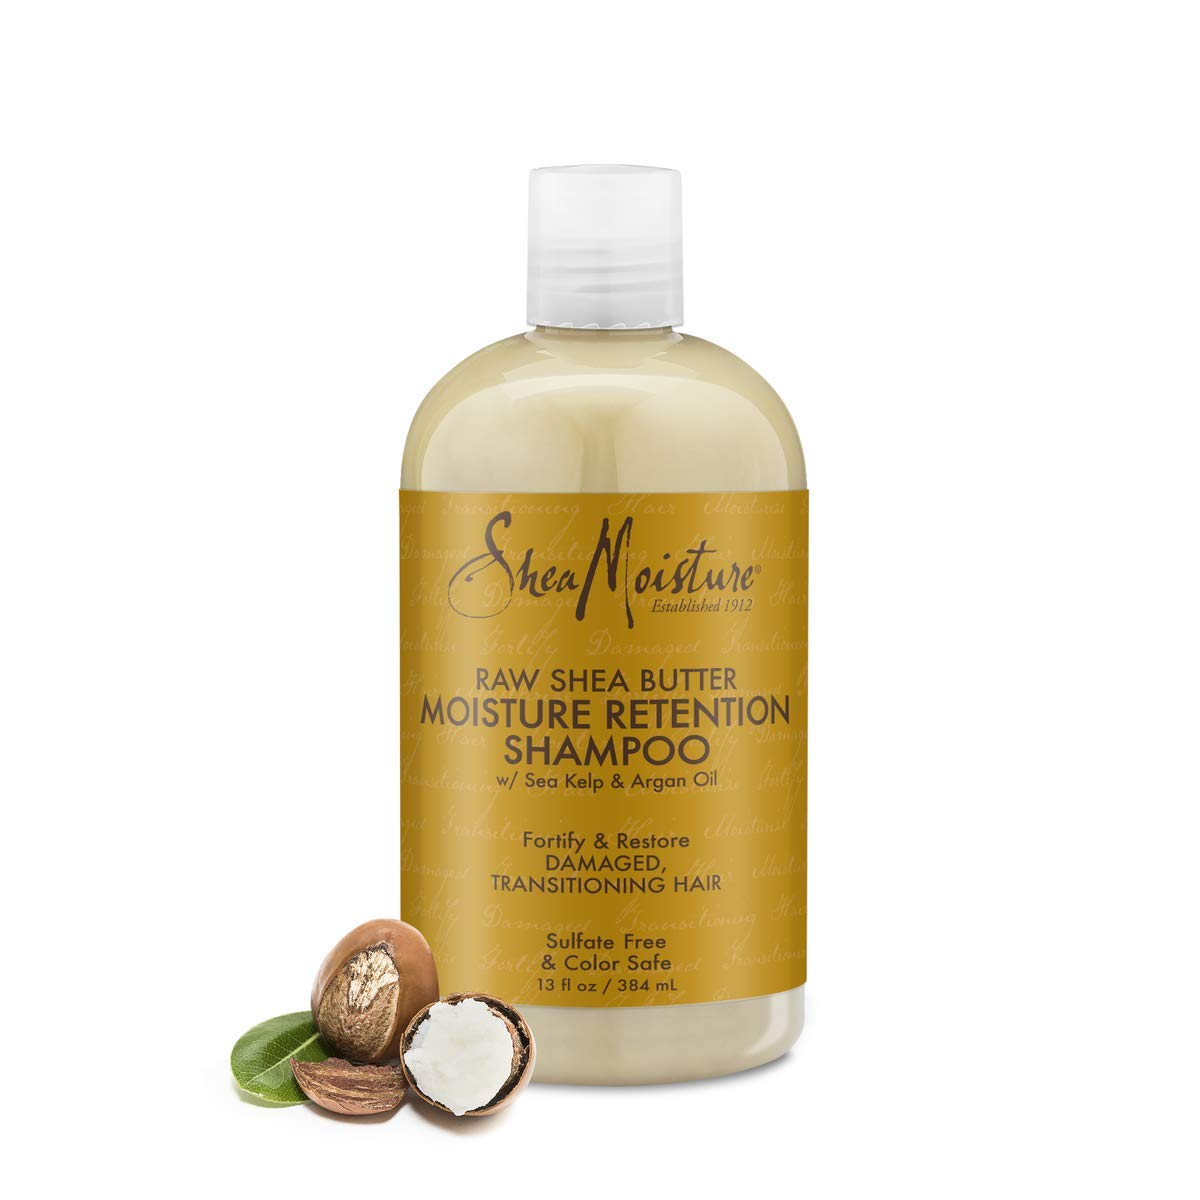 SheaMoisture Moisture Retention Shampoo for Dry, Damaged or Transitioning Hair Raw Shea Butter to Hy…